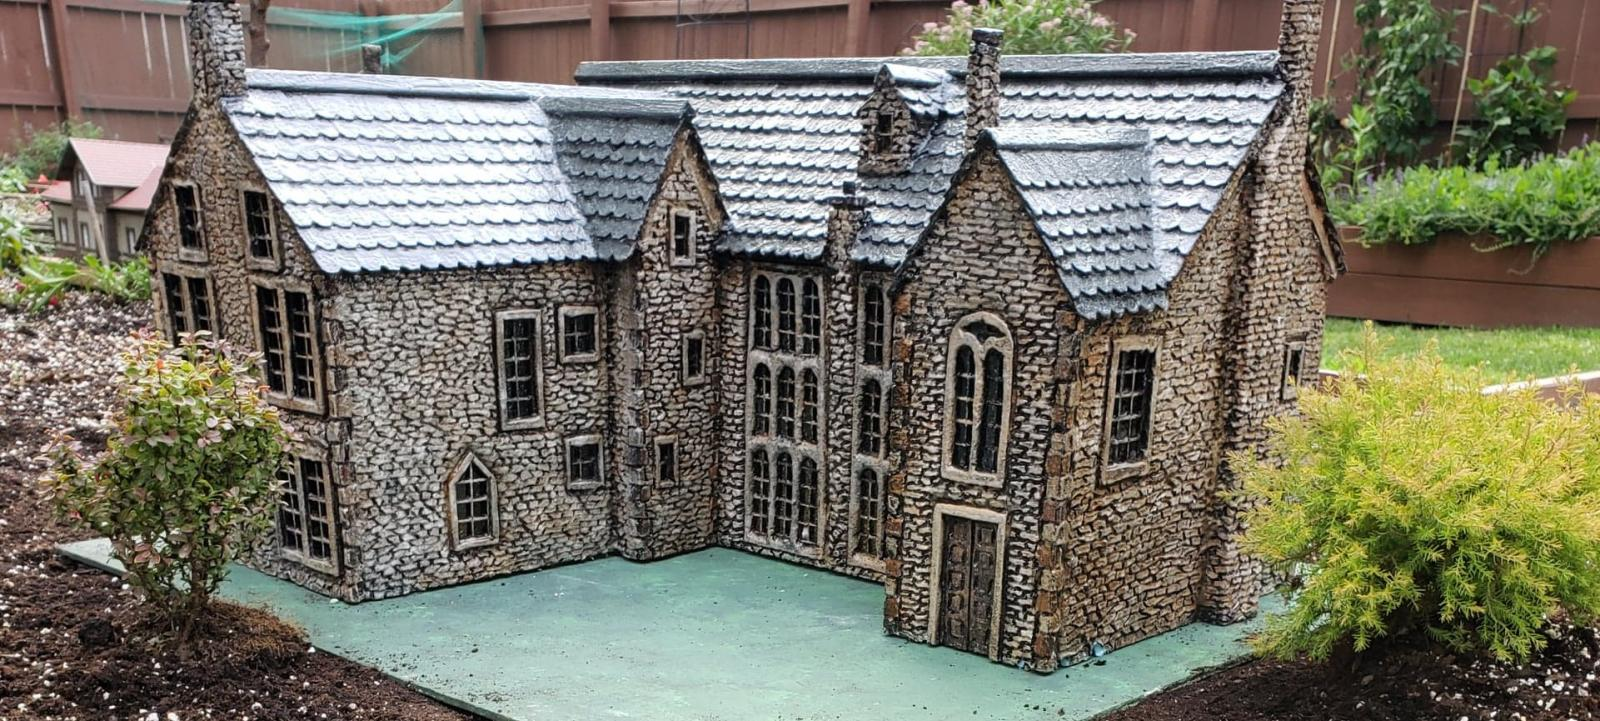 1:24 scale Poldark series Chavenage House